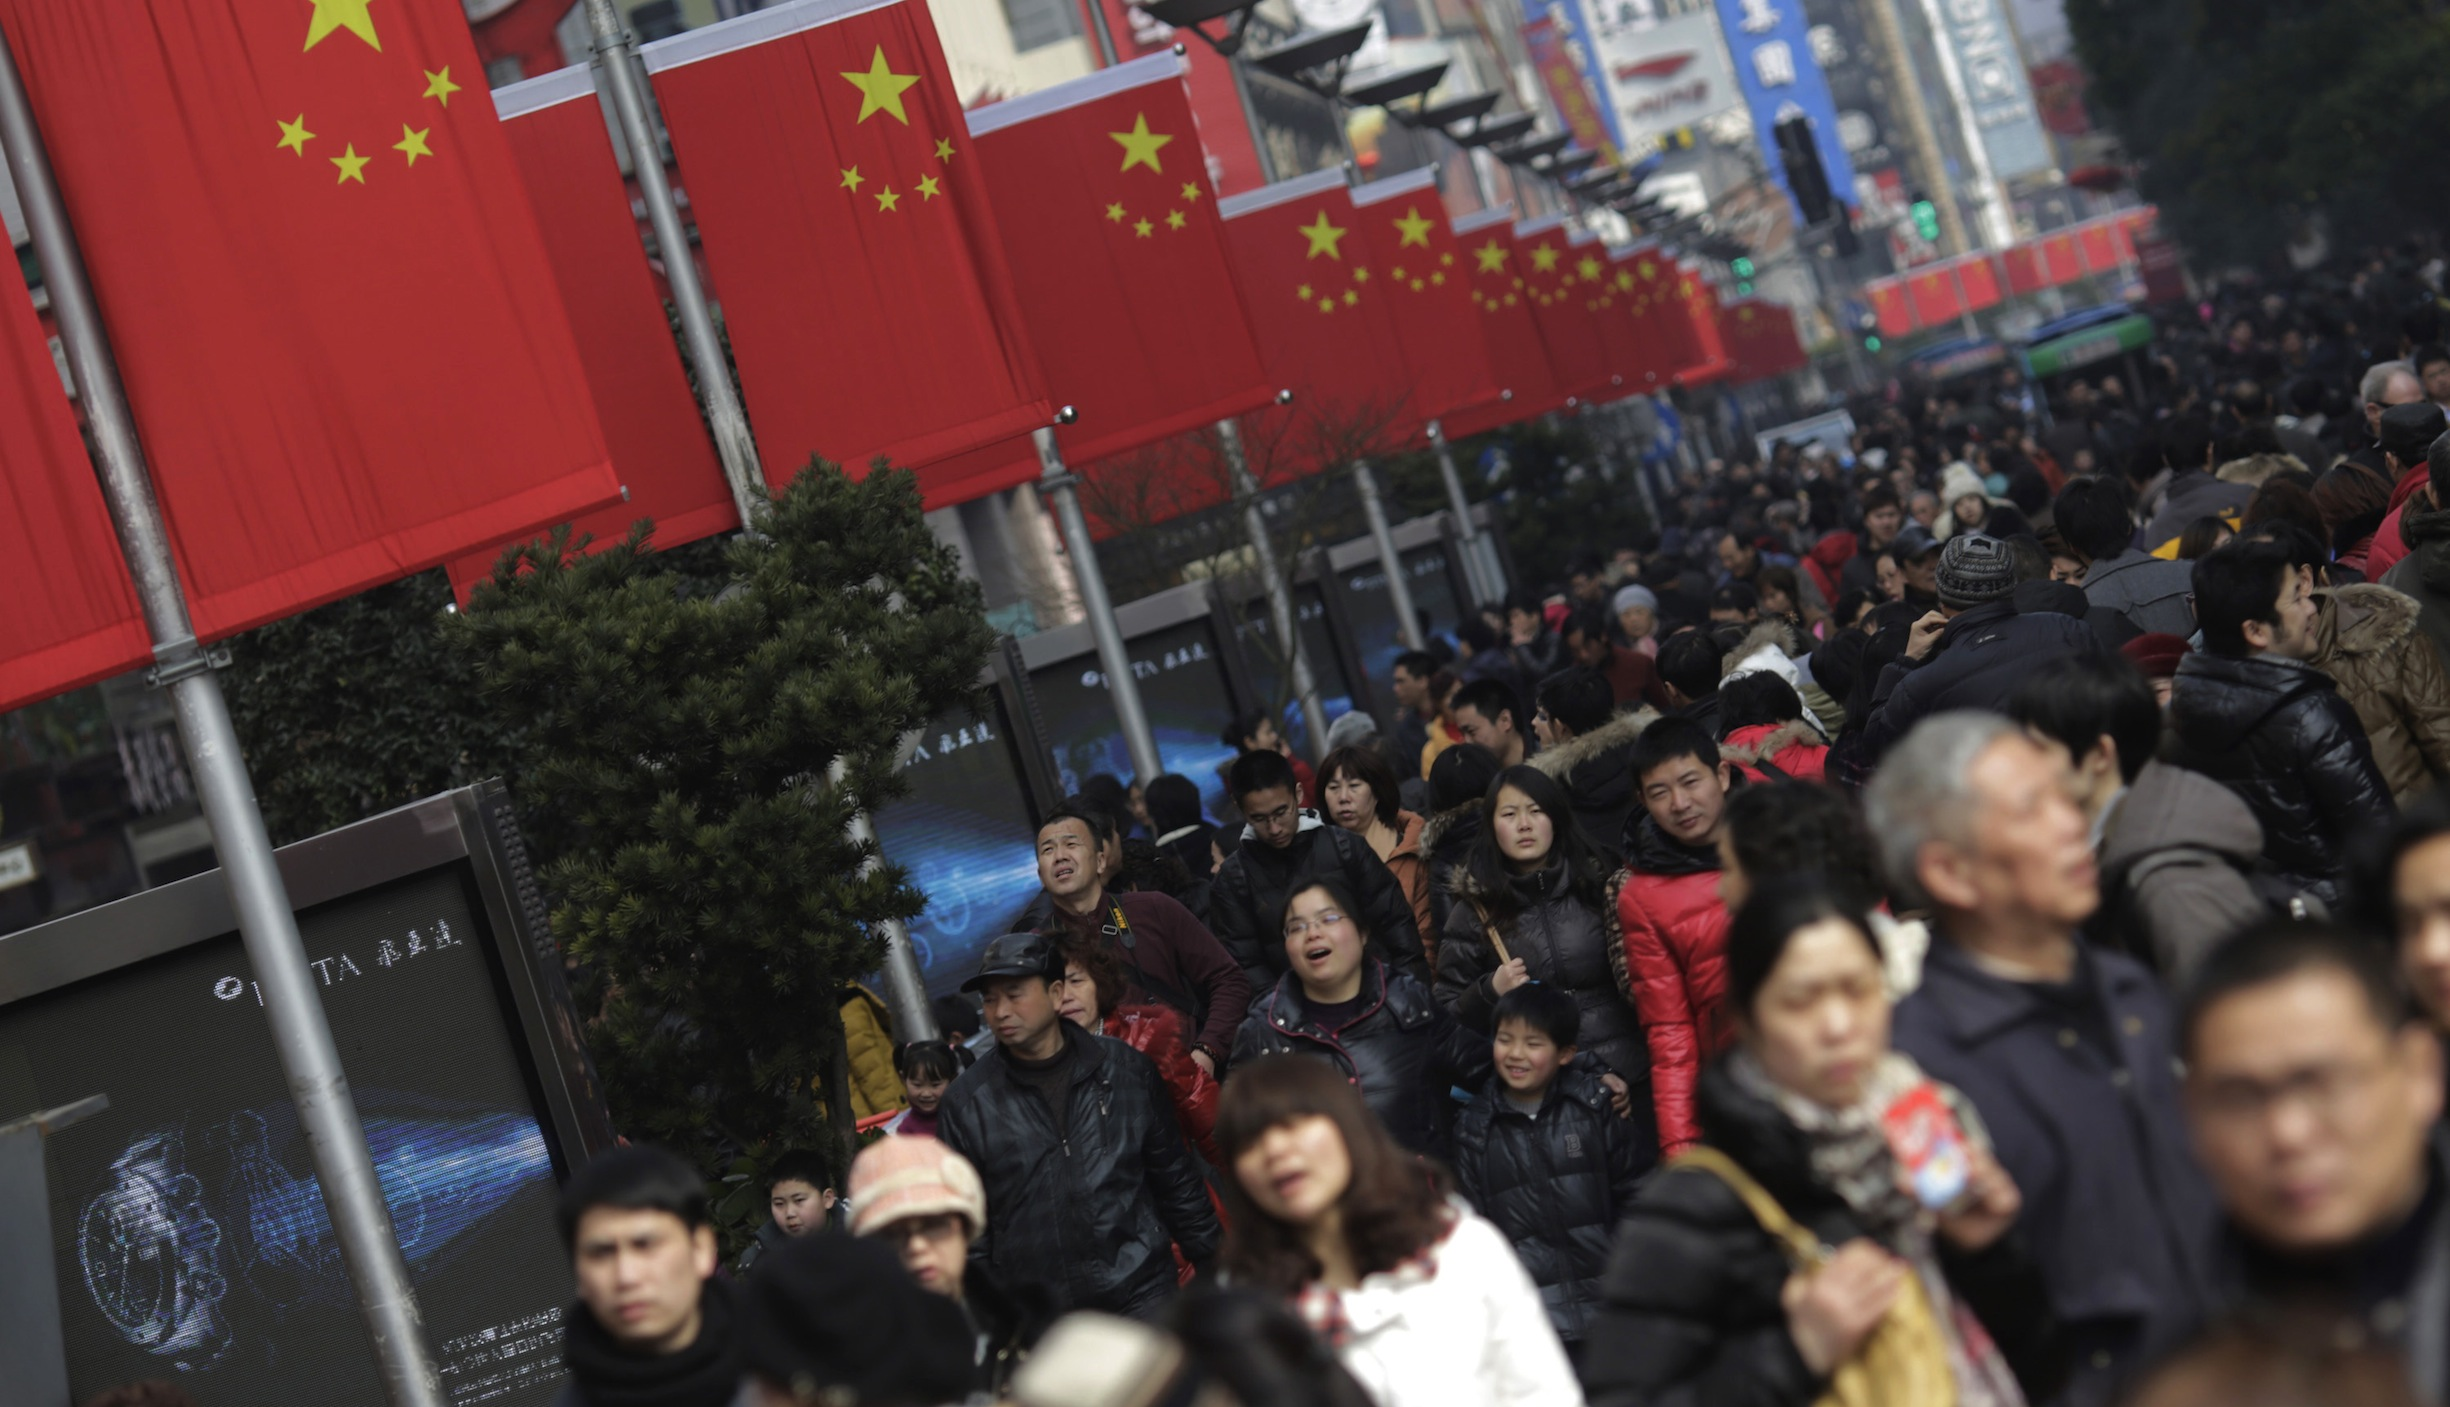 Visitors crowd a shopping street in Shanghai, China on Wednesday Feb. 13, 2013, on the fourth day of the Chinese Lunar New Year. Chinese celebrate the arrival of the Year of the Snake, according to the Chinese Zodiac.